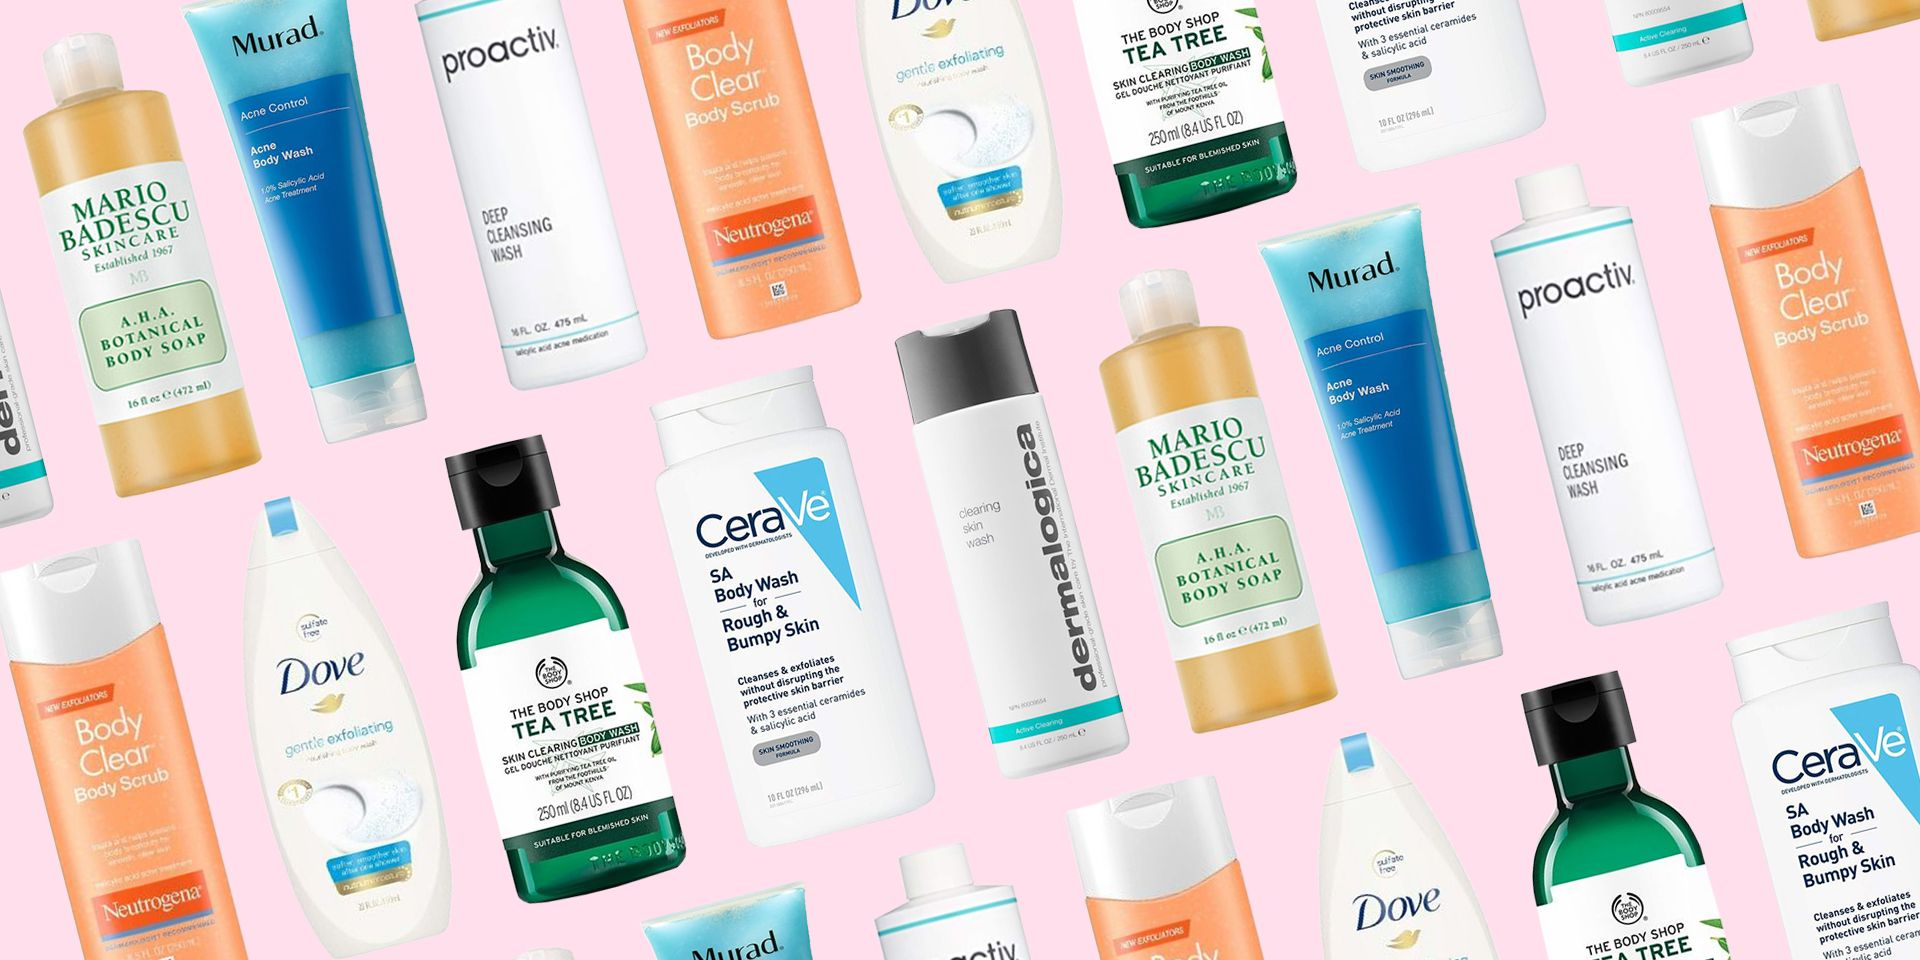 20 Best Acne Body Washes For Bacne And Breakouts In 2020